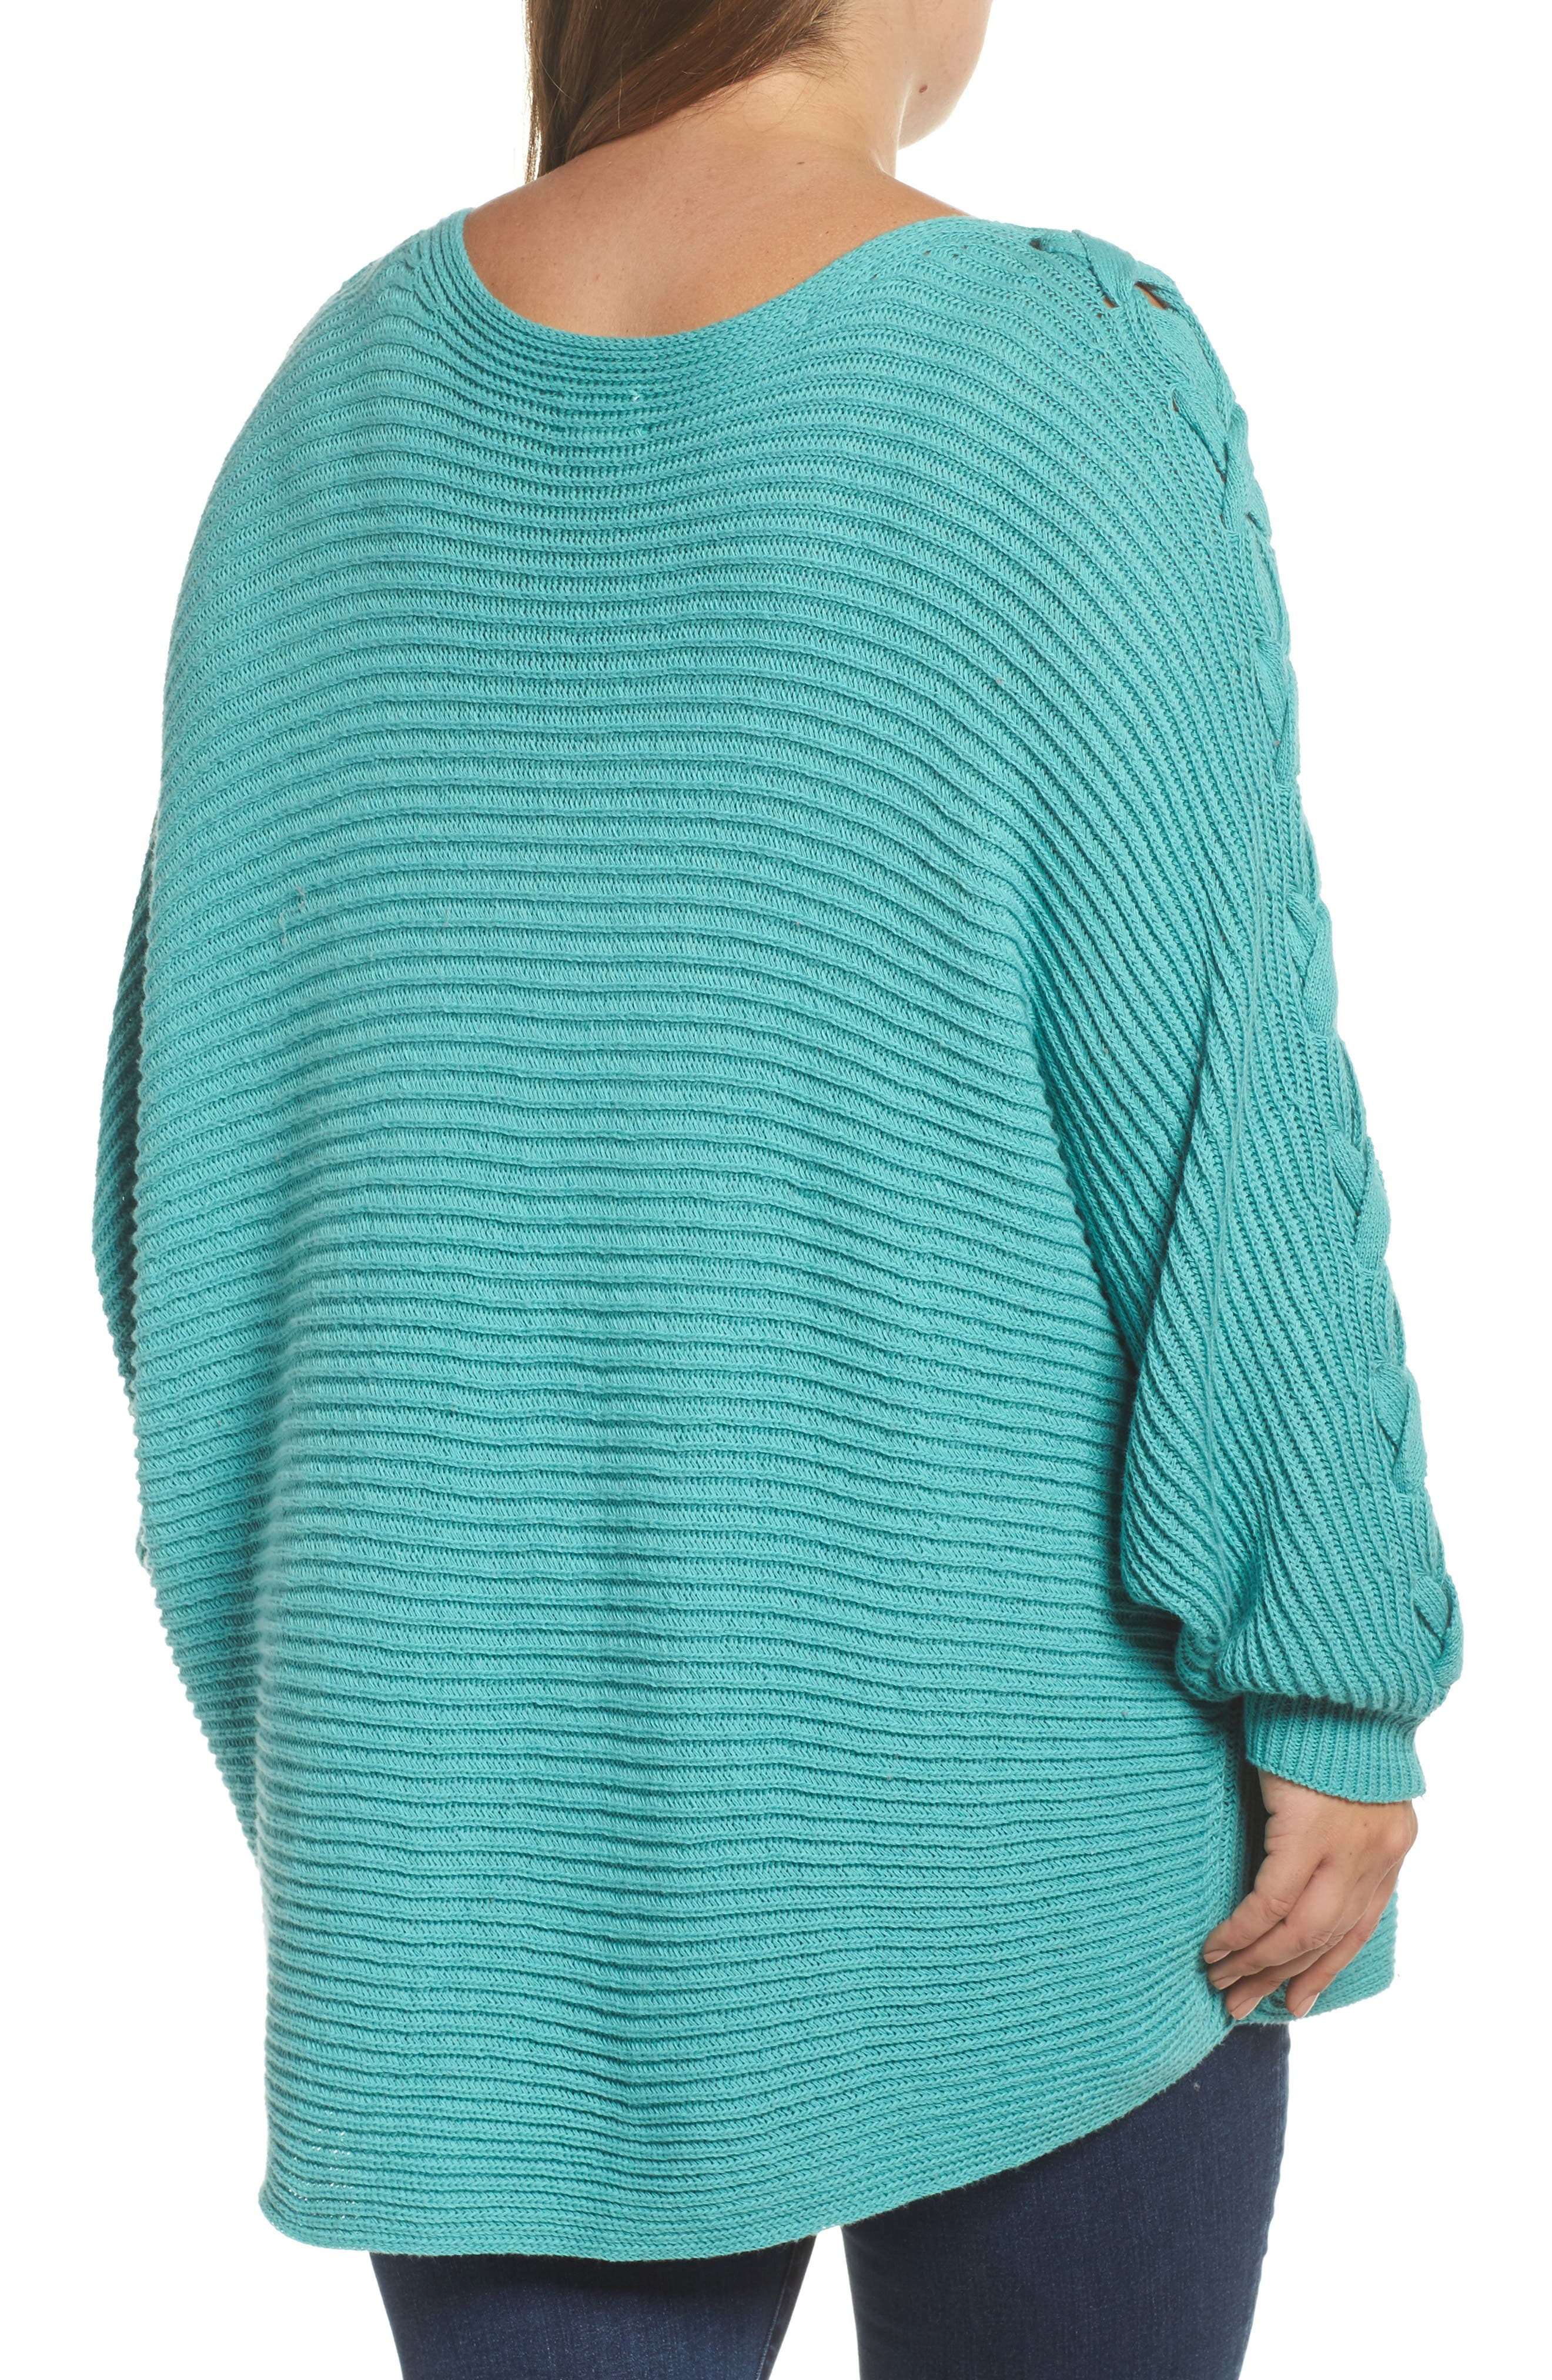 Lace-Up Sleeve Sweater,                             Alternate thumbnail 2, color,                             310